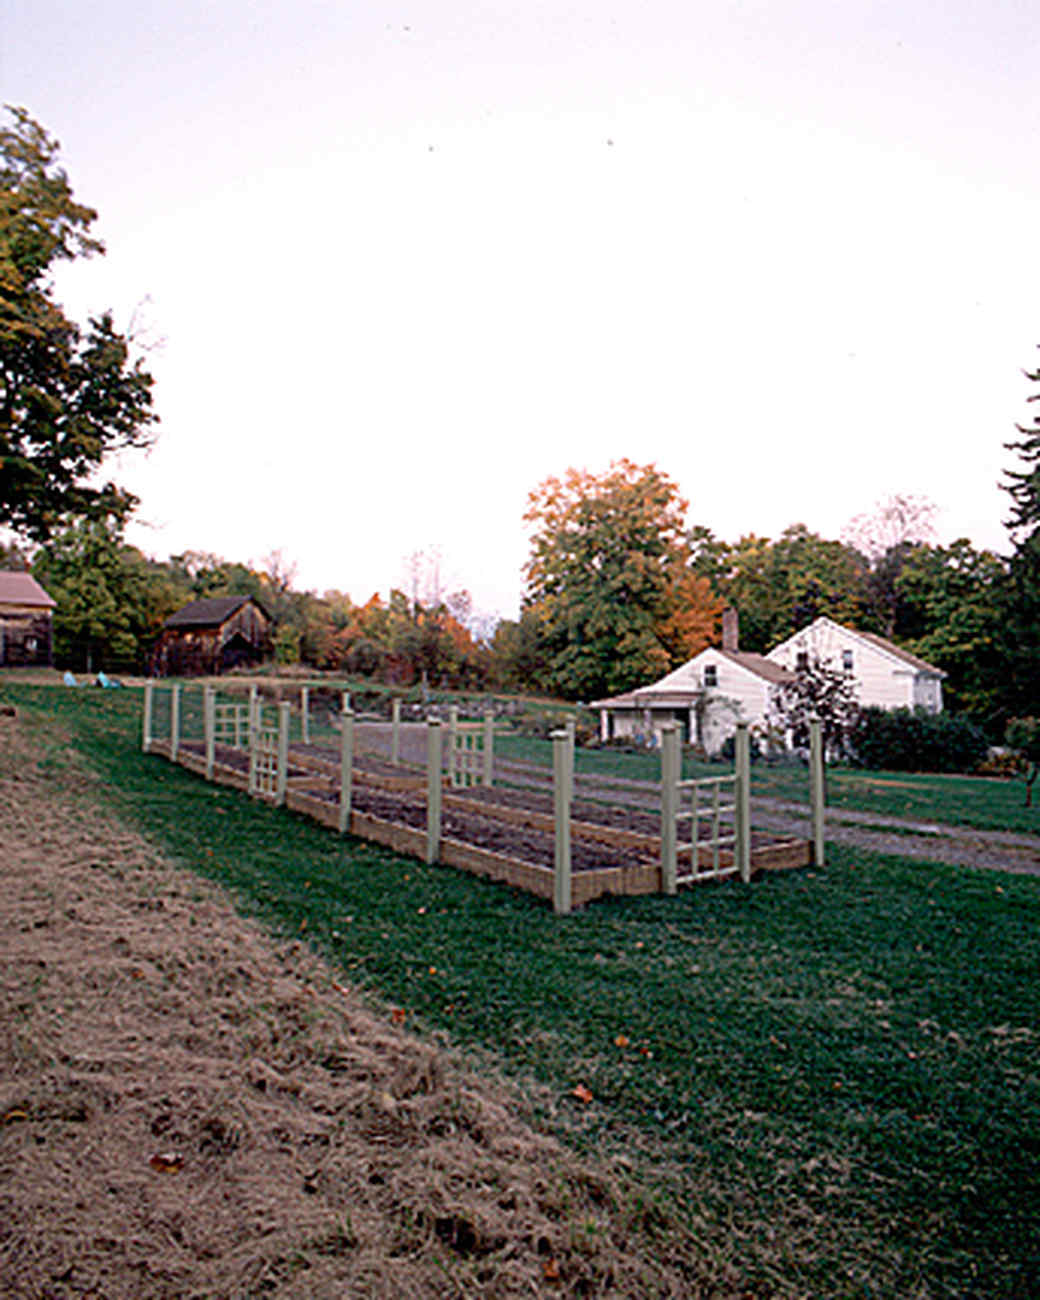 raised-beds-2-a97052-1215.jpg